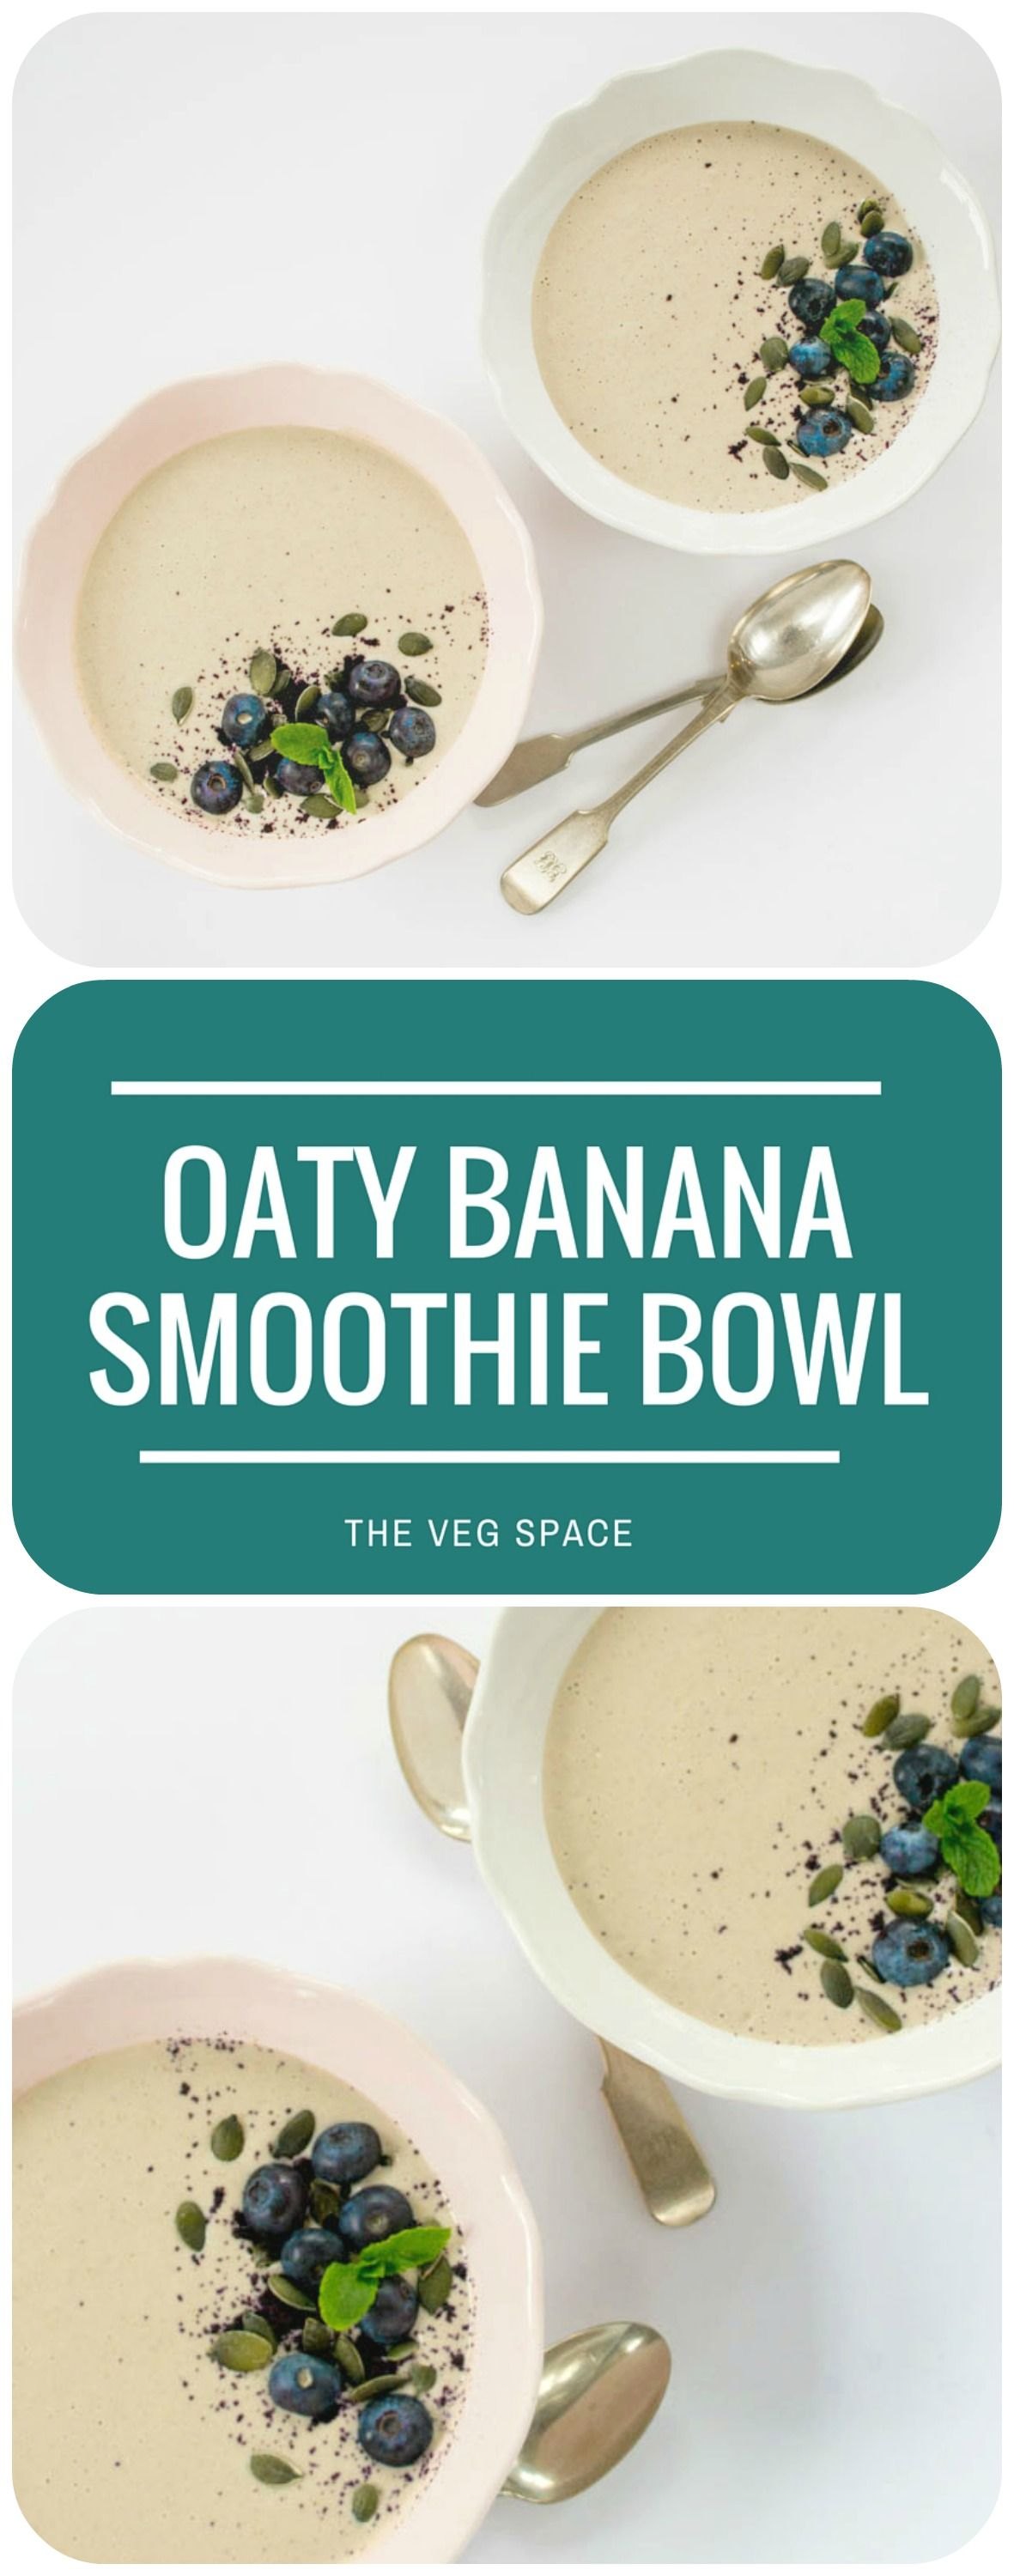 This pretty-as-a-picture smoothie bowl has all the benefits of porridge, but is as quick and easy to make as a smoothie. Keeps hunger locked up till lunch! Vegan and vegetarian.